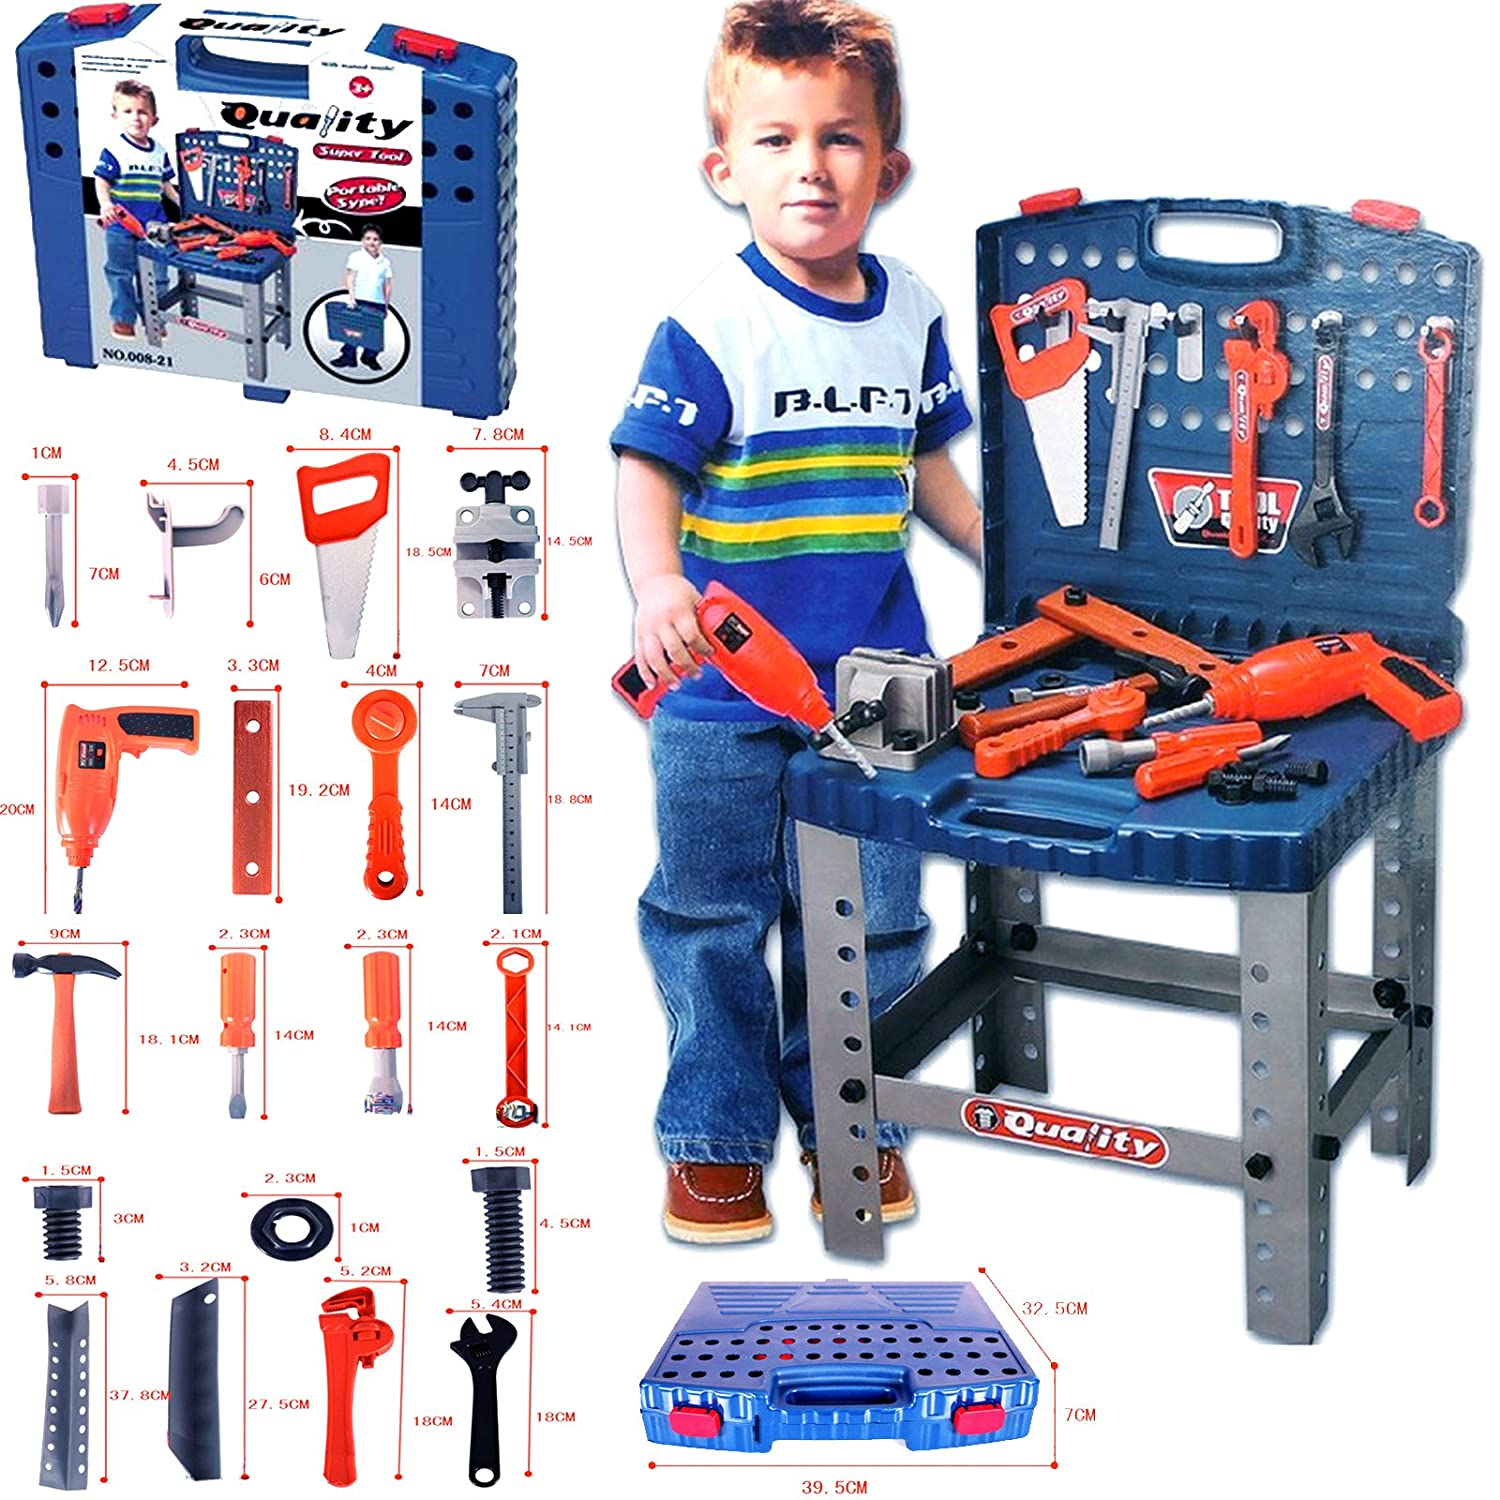 Toy Building Set For Boys : Pc kids work bench tool box kit construction set toy diy